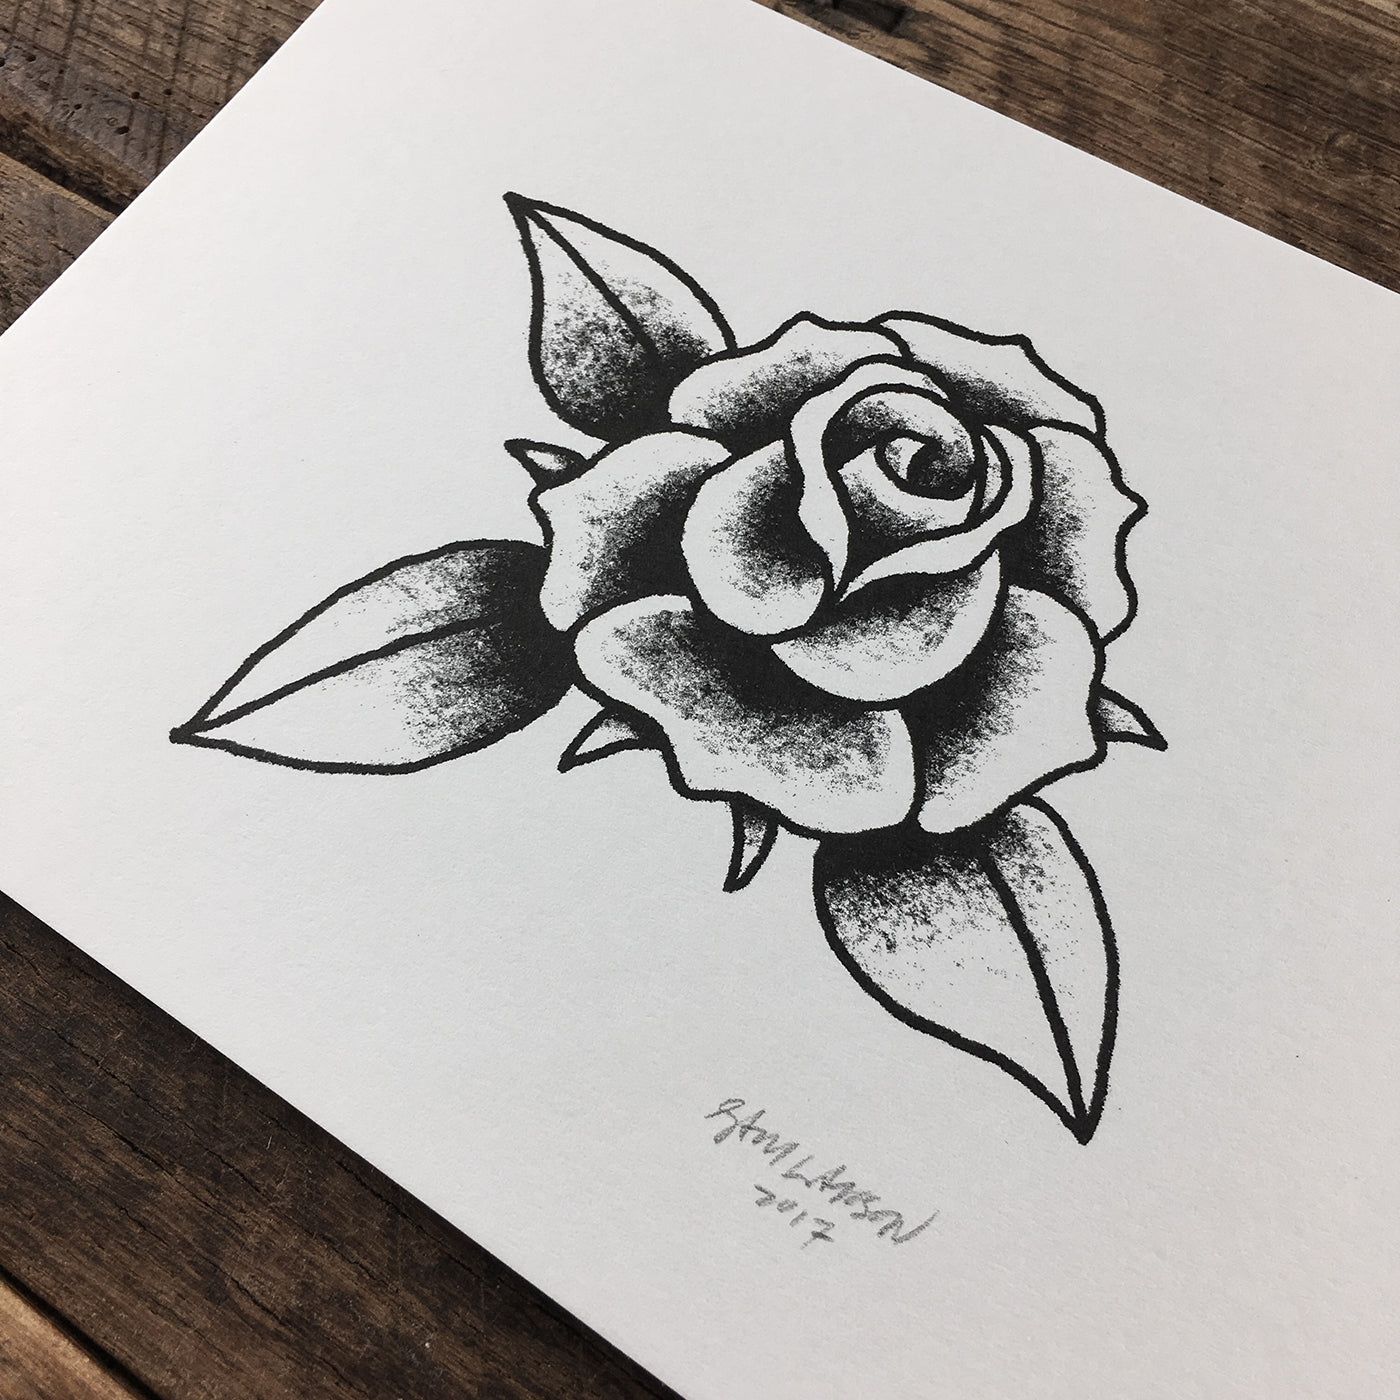 Rose - Signed Print #60